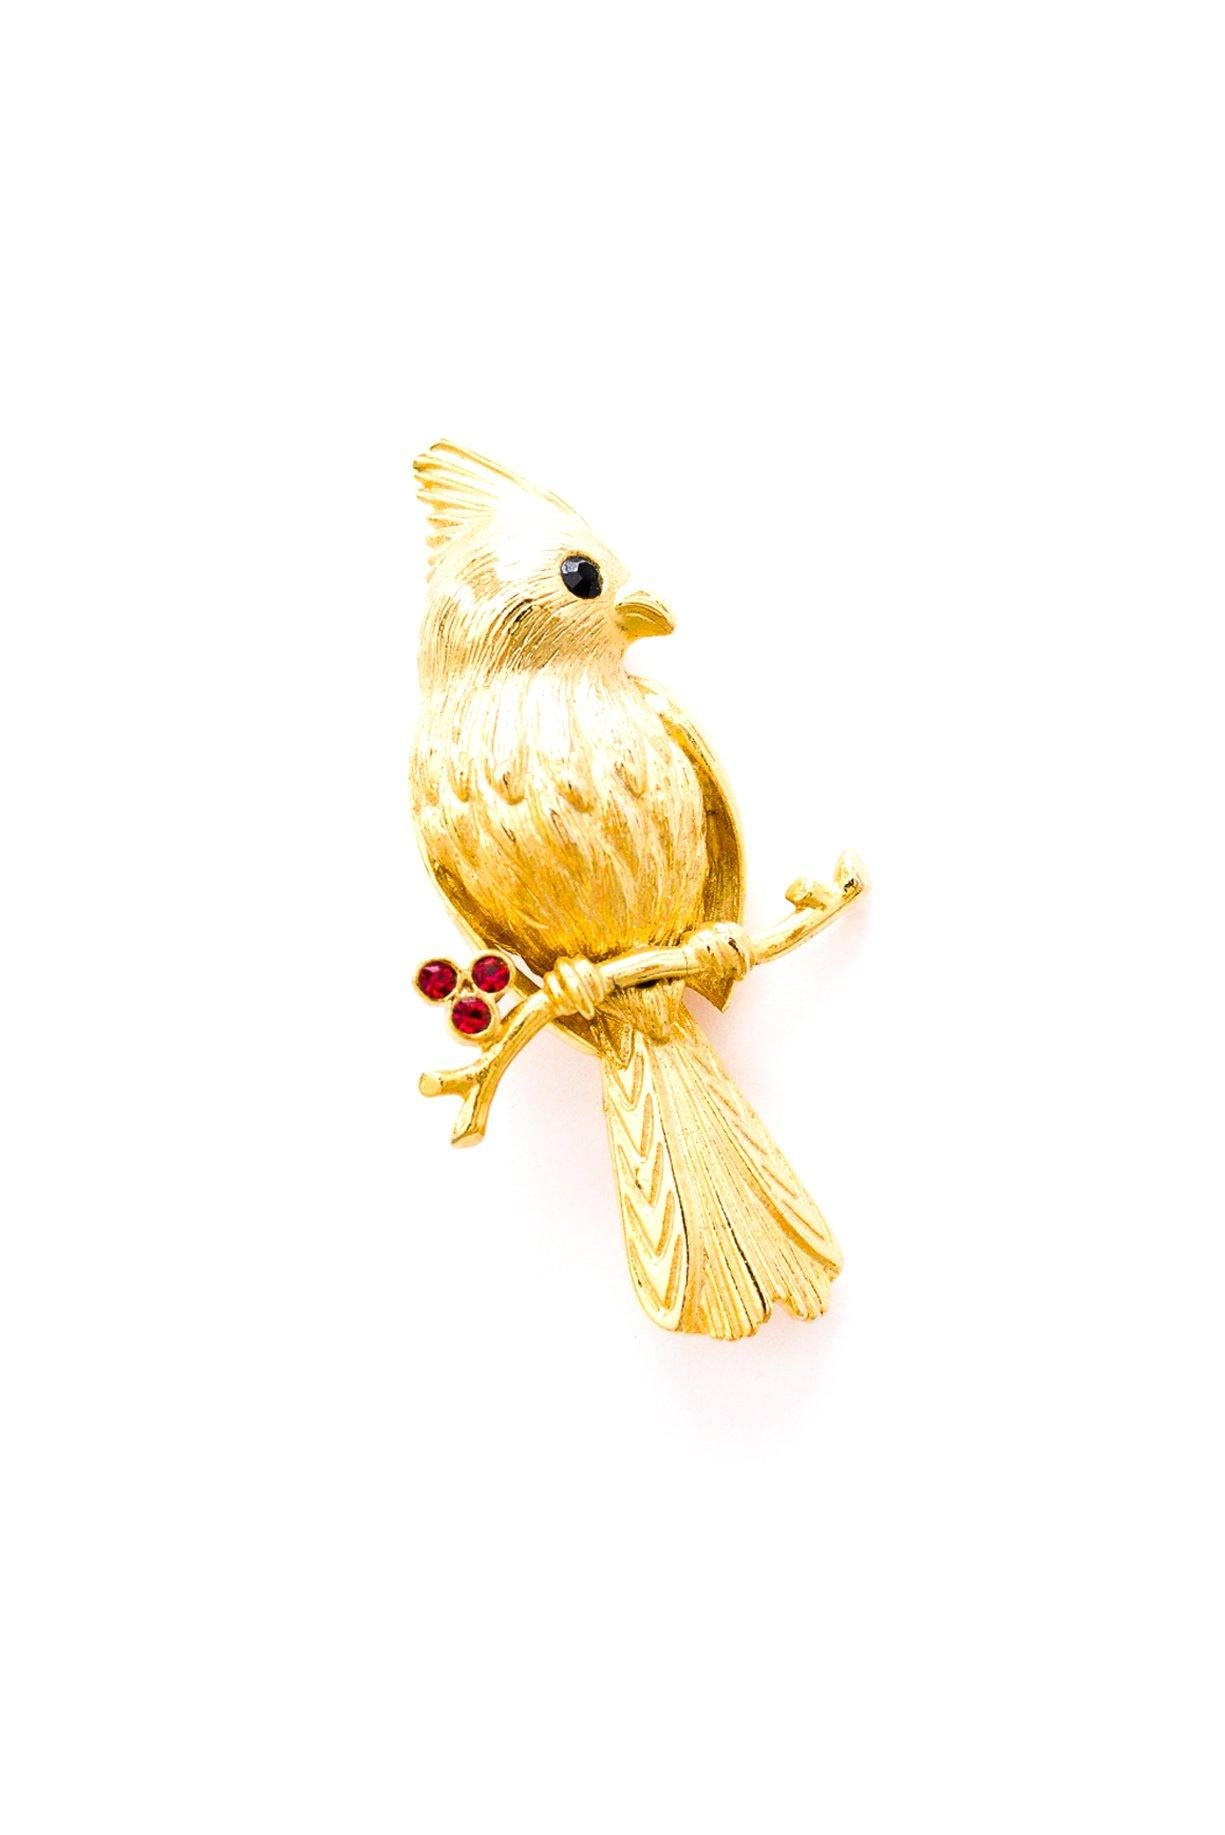 Vintage Gerry's Bird Brooch from Sweet & Spark.